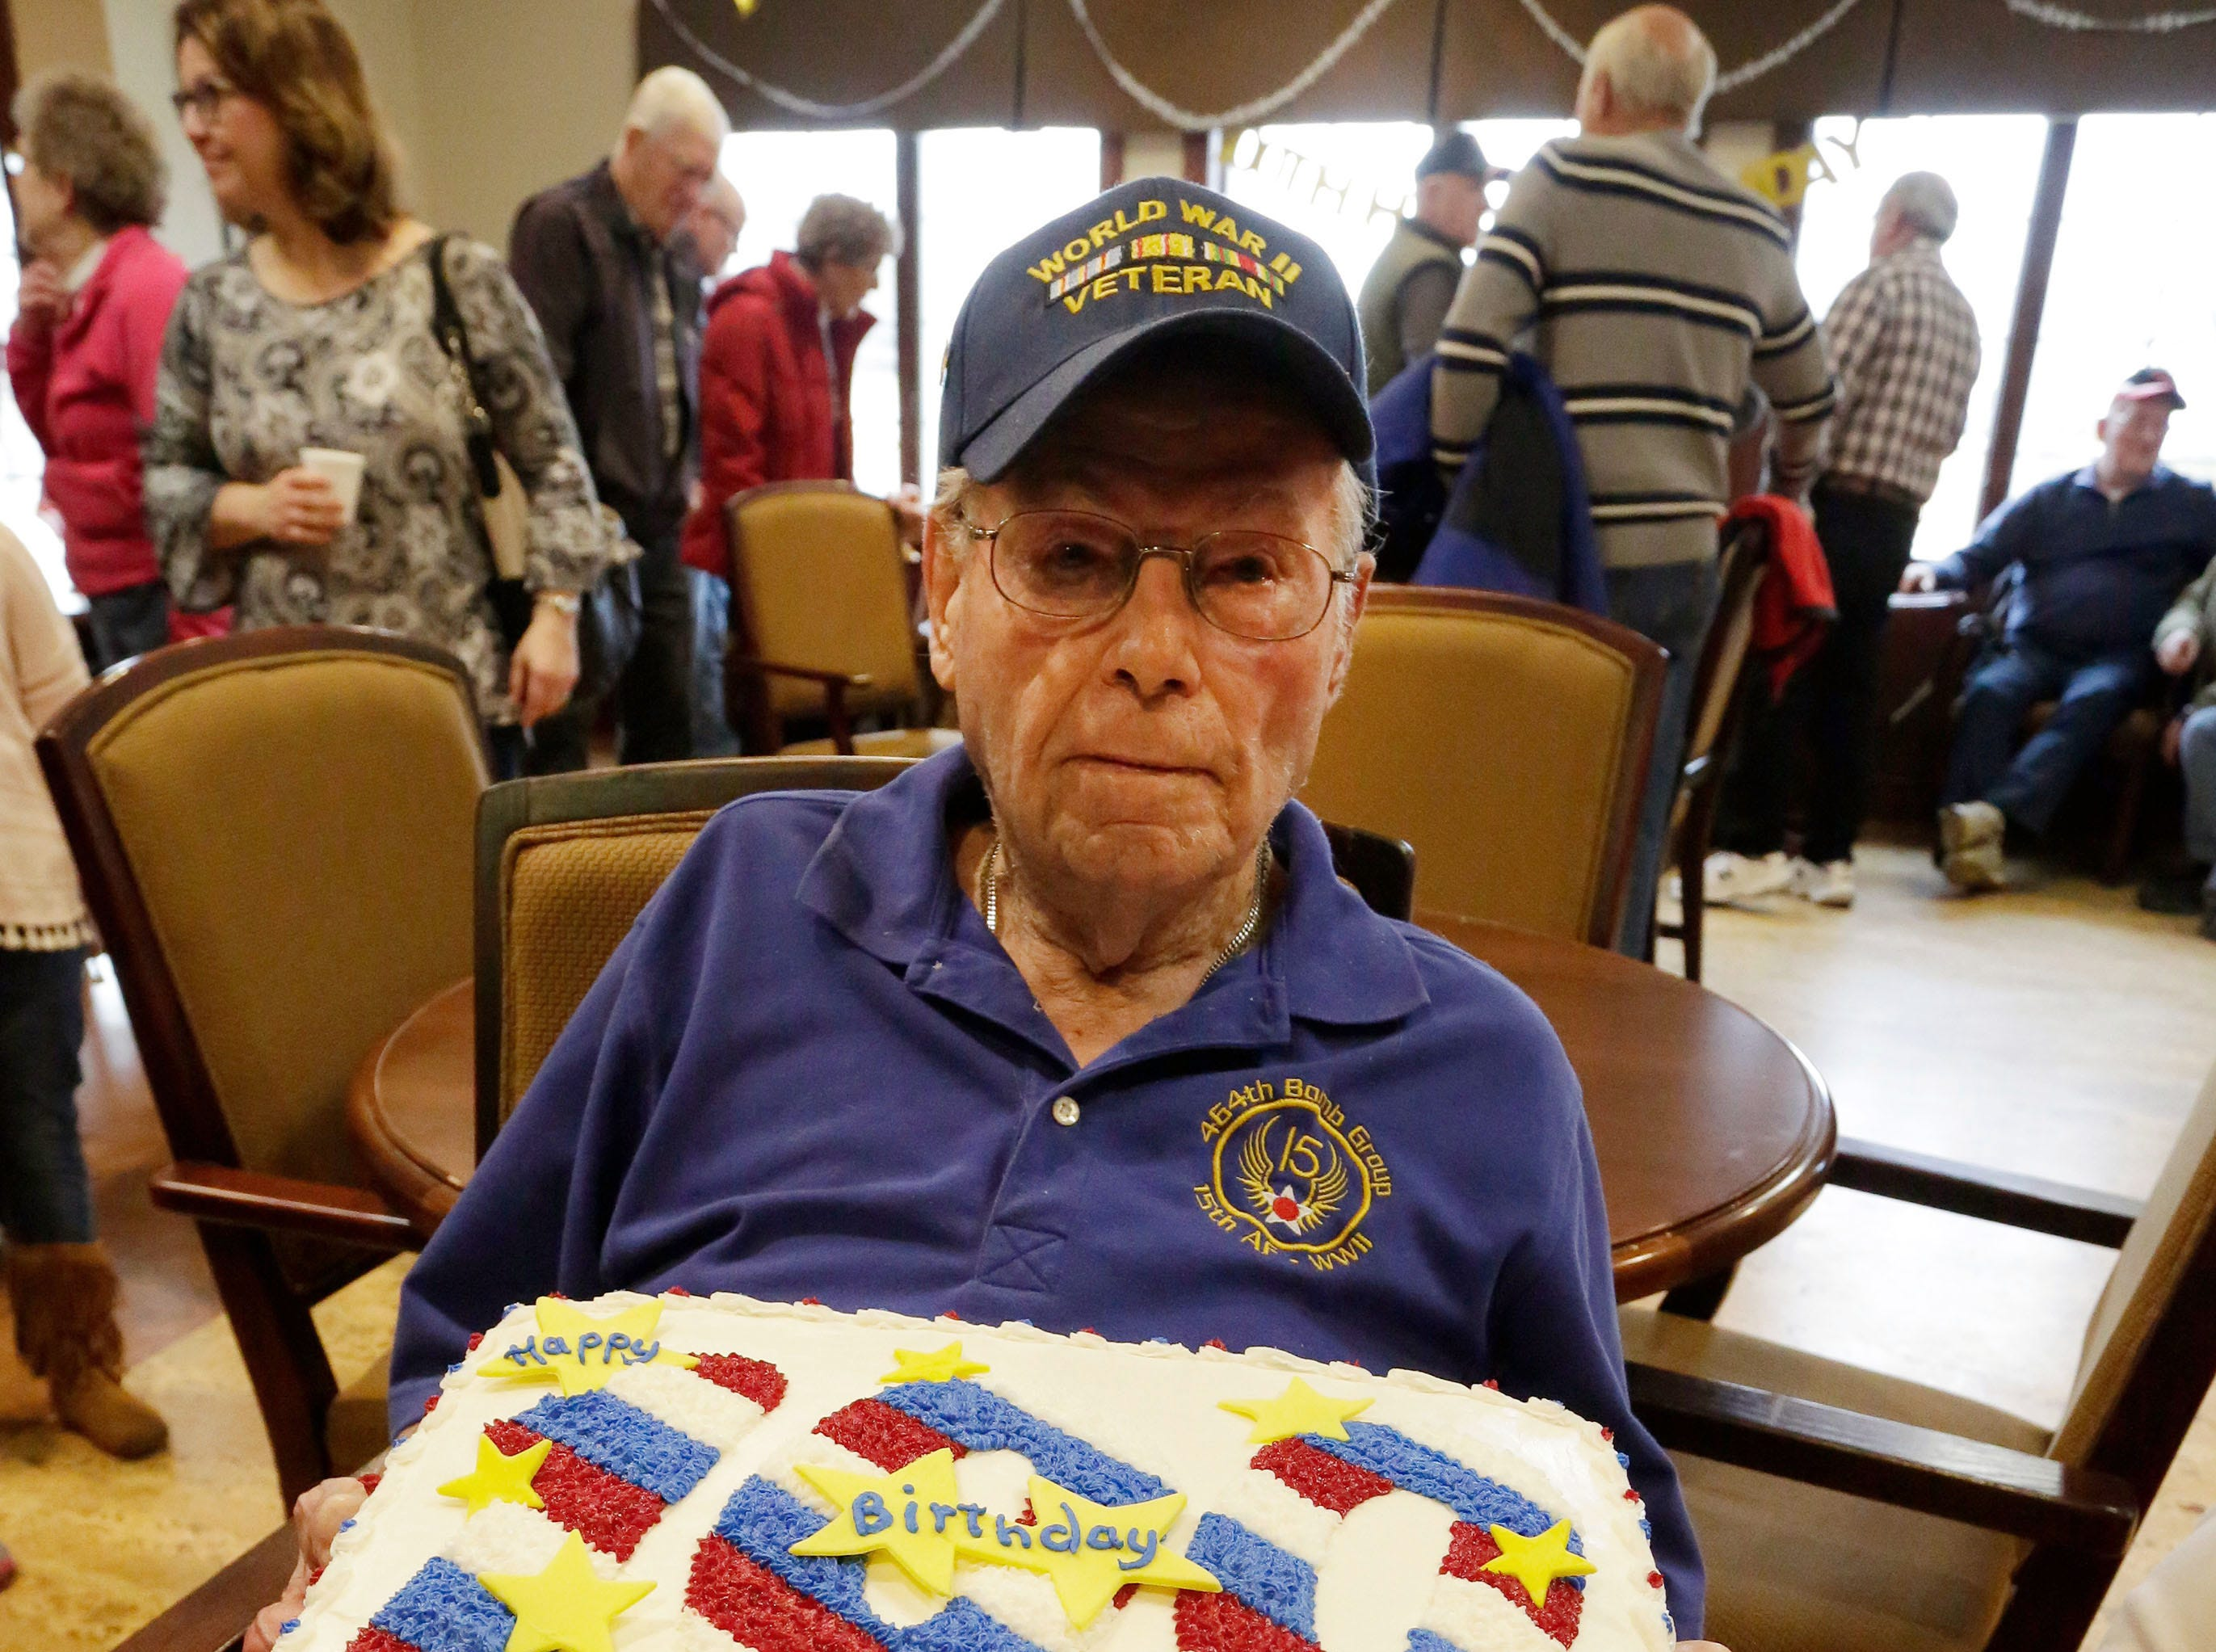 100-year-old veteran Don Harder poses with his birthday cake, Friday January 18, 2019, 2019, at Pine Haven Christian Communities in Oostburg, Wis.